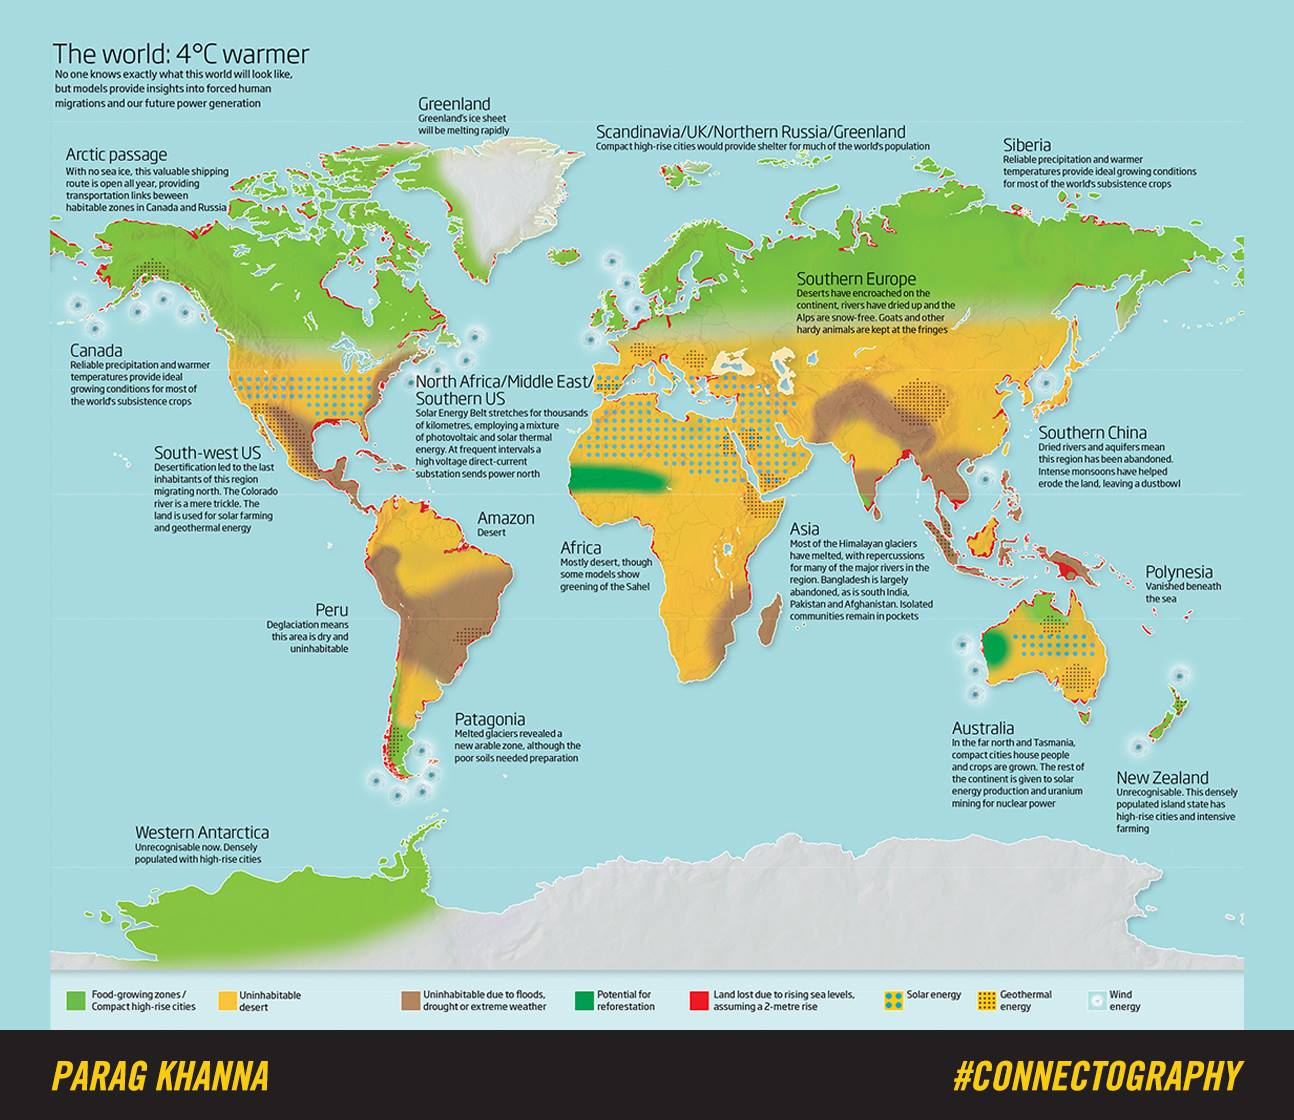 Map Of Australia Desert.Global Warming Map By Parag Khanna Shows Results Of 4c Temp Rise